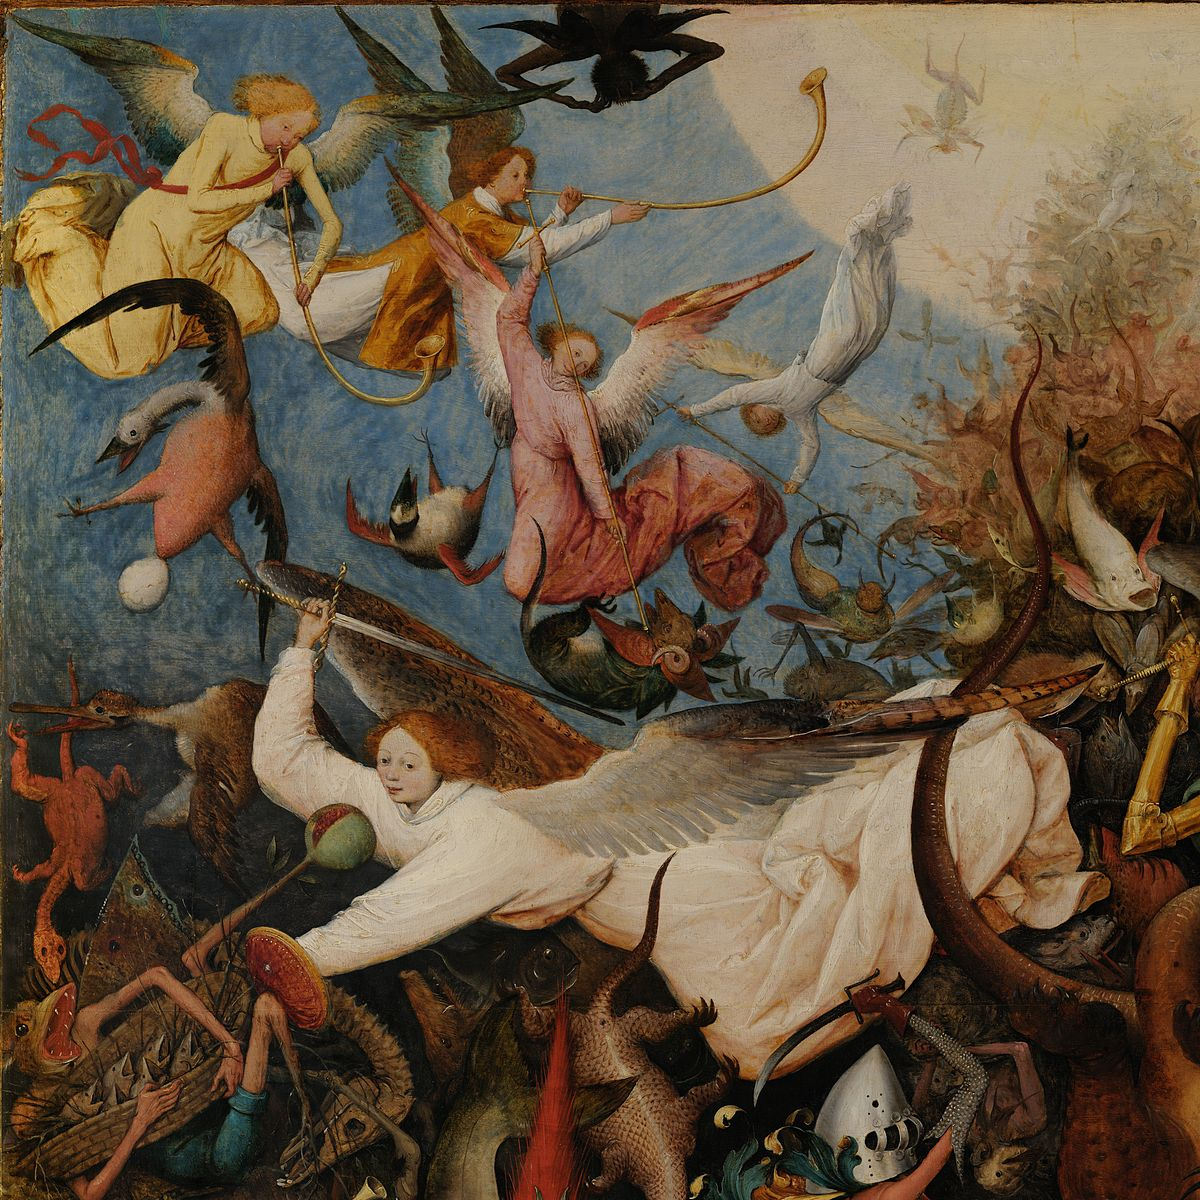 pieter_bruegel_the_elder_the_fall_of_the_rebel_angels_google_art_project-x0-y0.jpg